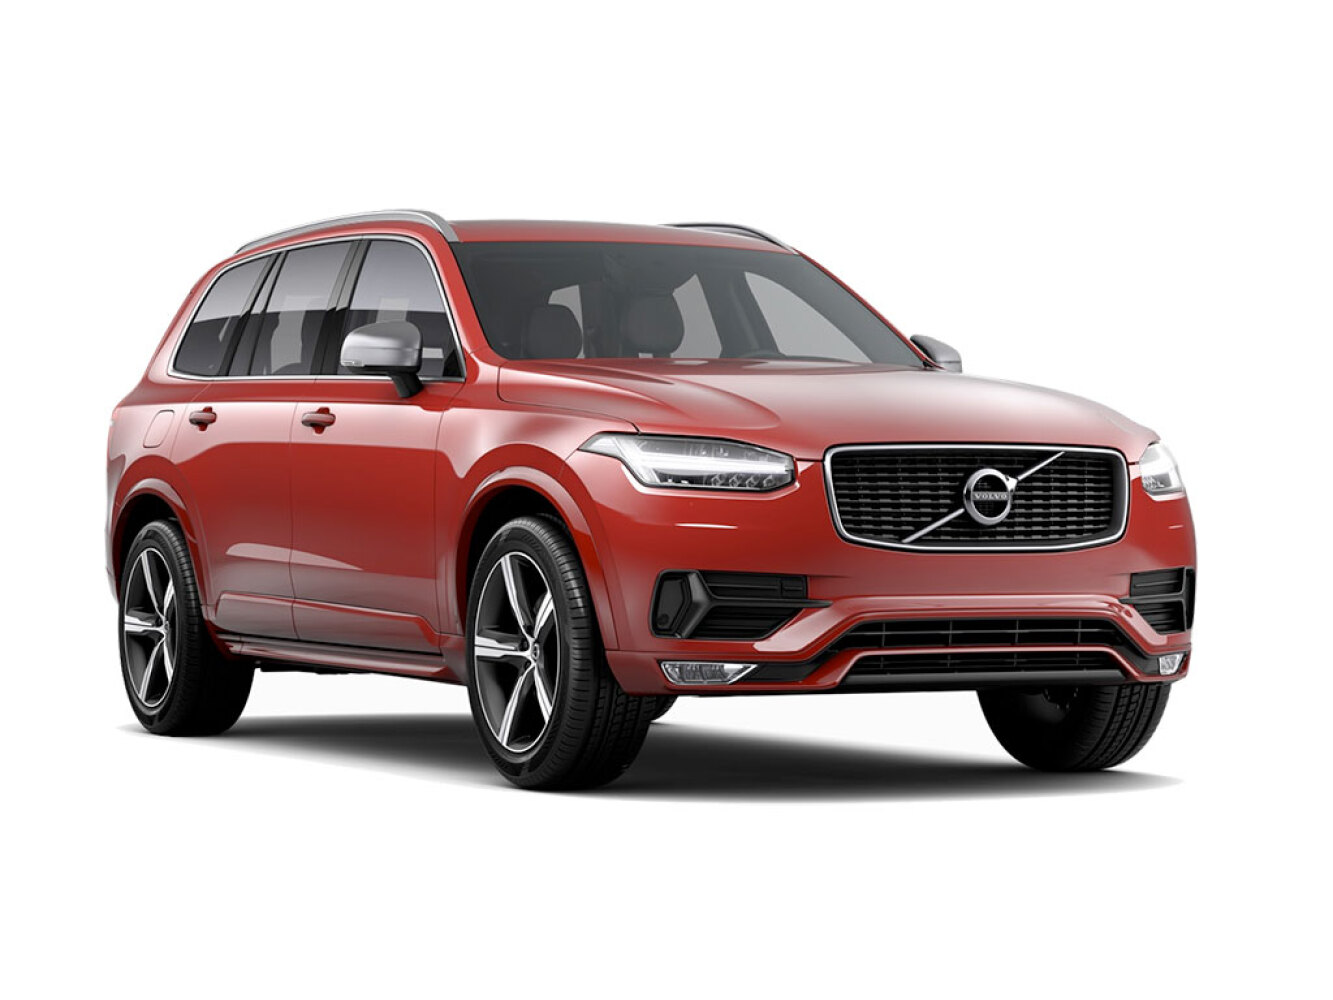 new volvo xc90 2 0 d5 powerpulse r design 5dr awd geartronic diesel estate for sale bristol street. Black Bedroom Furniture Sets. Home Design Ideas